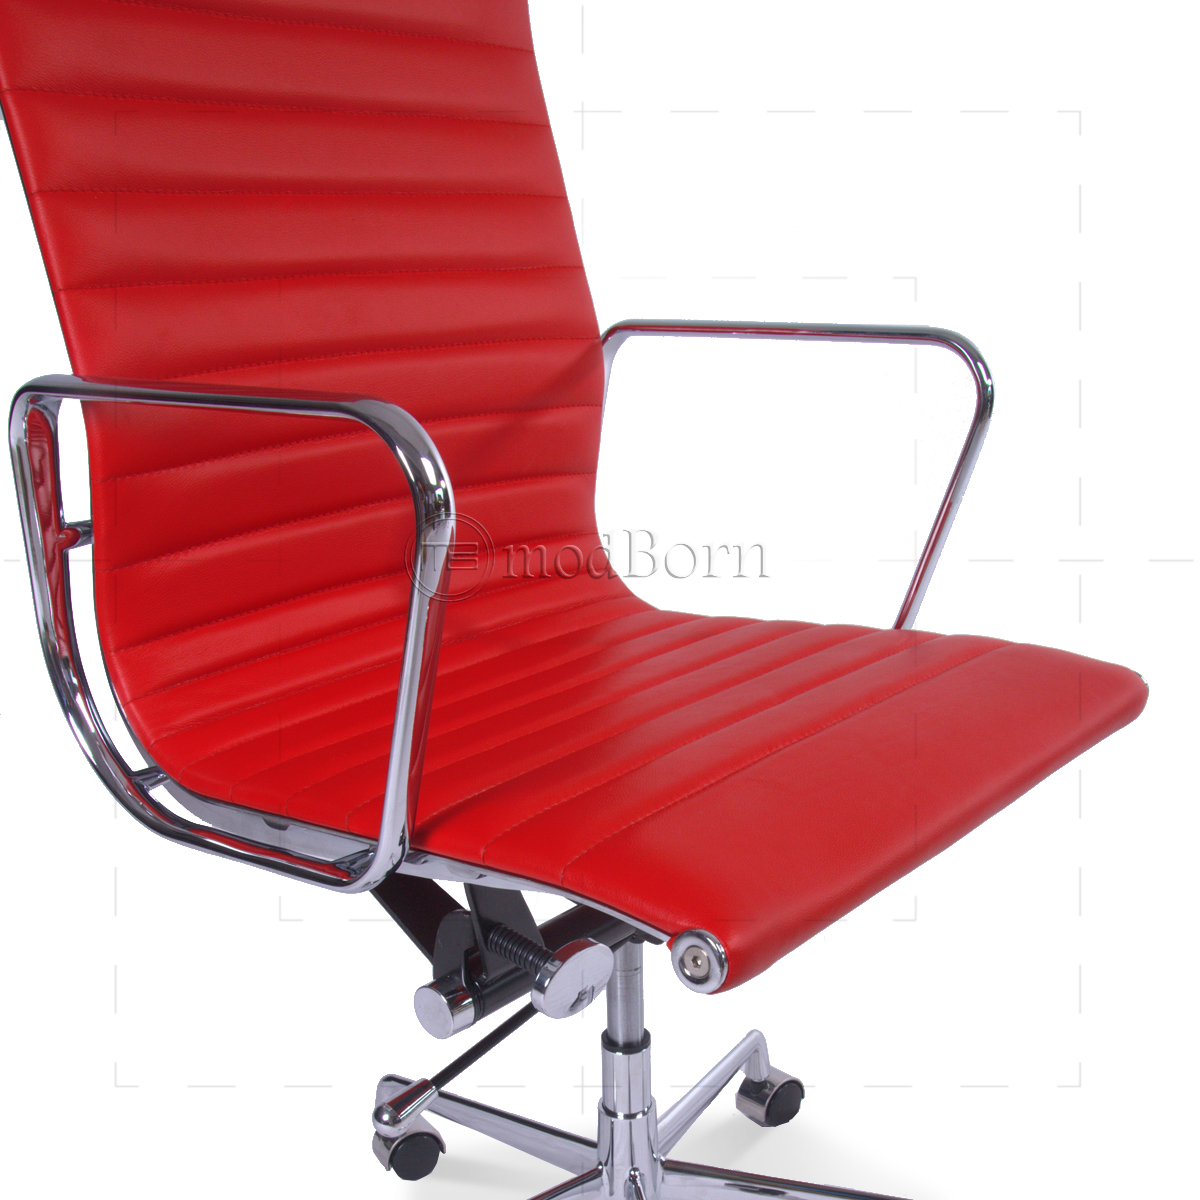 Ea119 eames style office chair high back ribbed red for Eames stuhl replica deutschland